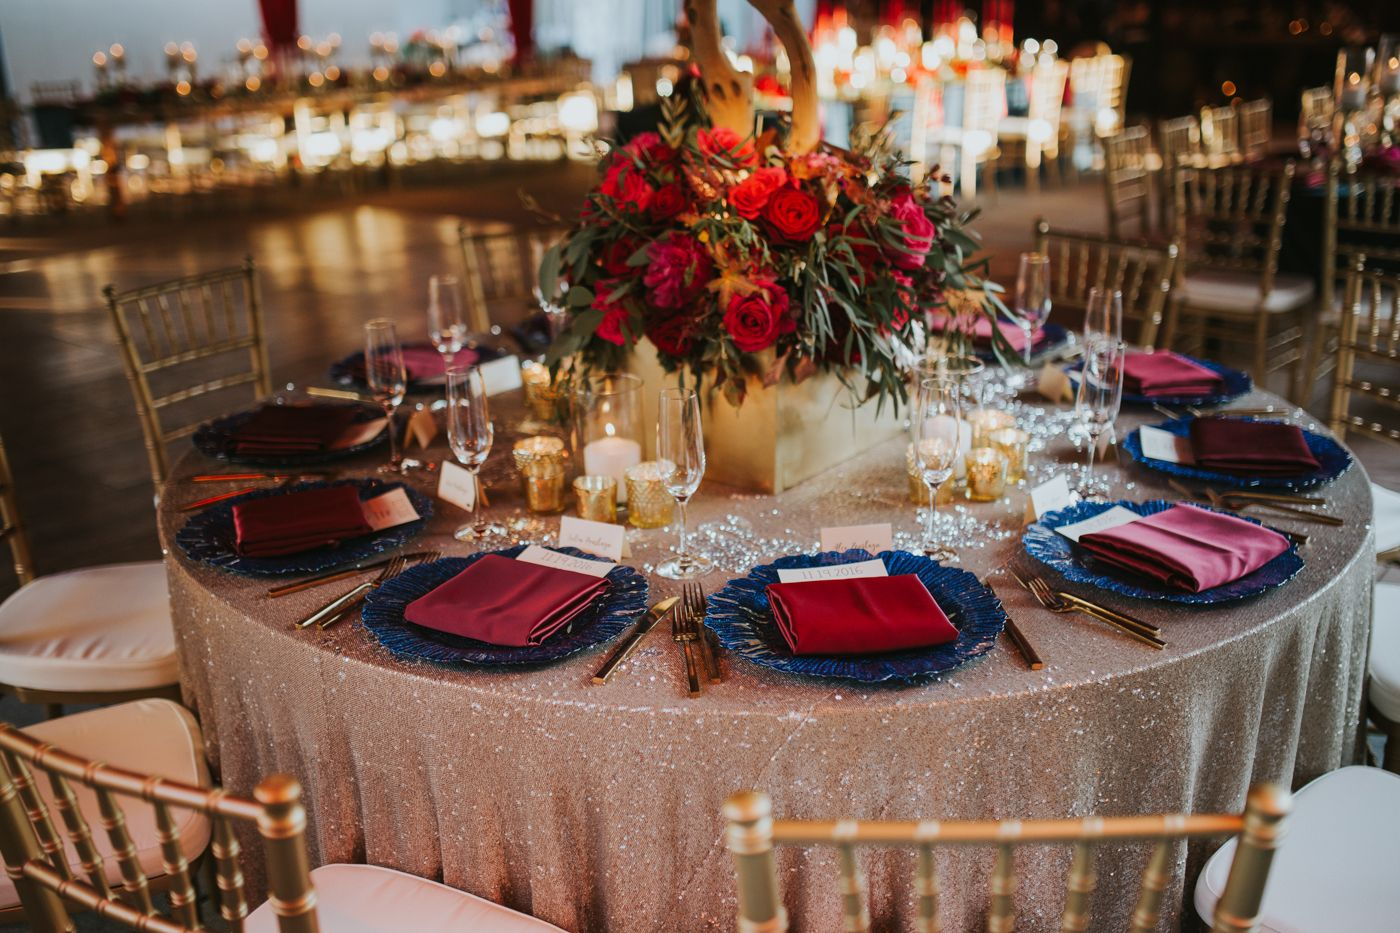 A Pro Tennis Player's Fall Wedding Featuring a Moody Color